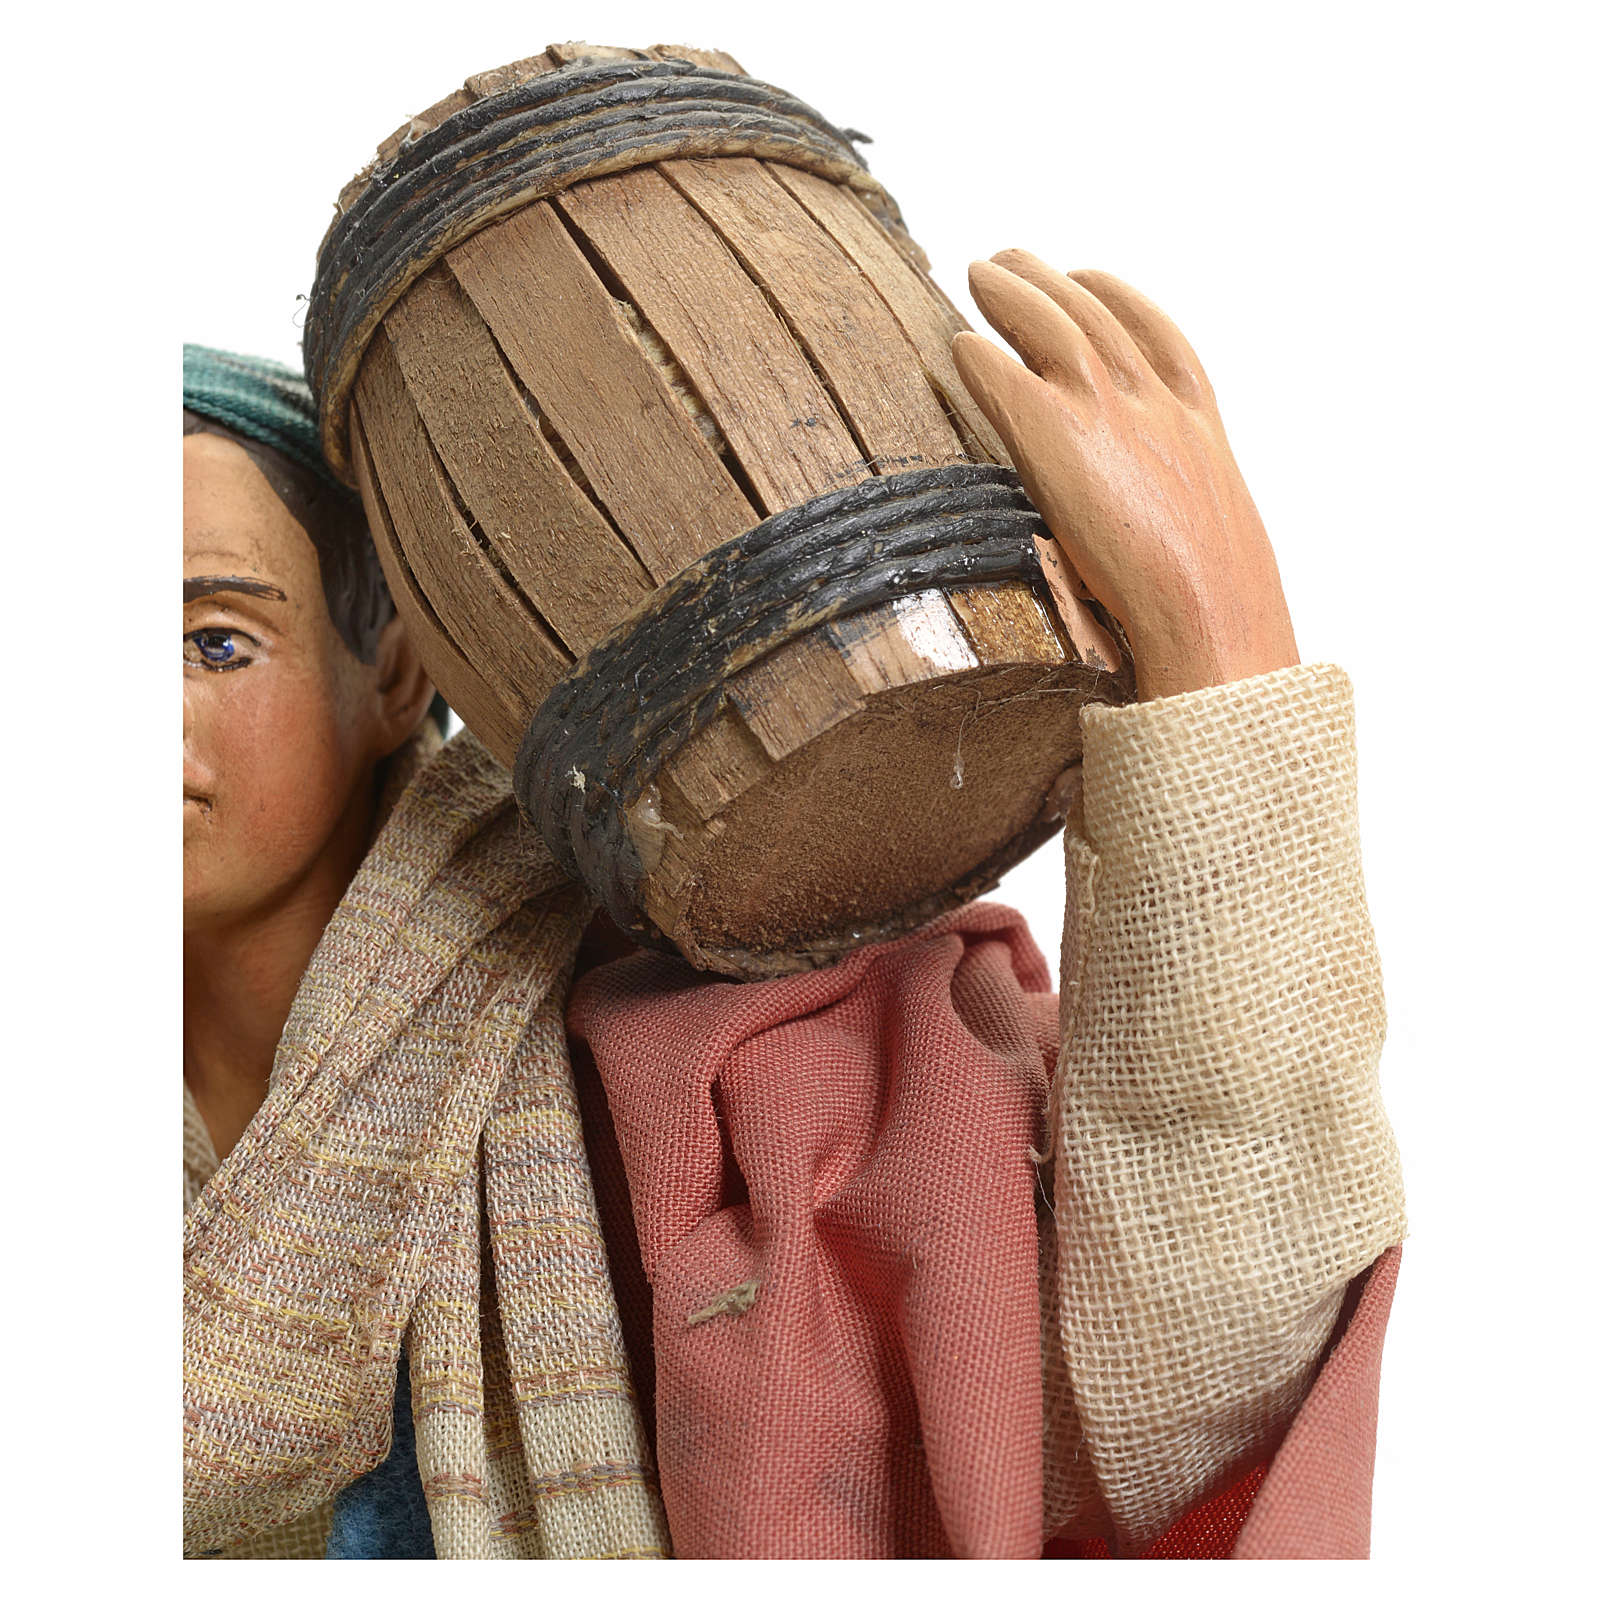 Neapolitan Nativity figurine, man carrying cask, 18 cm 4